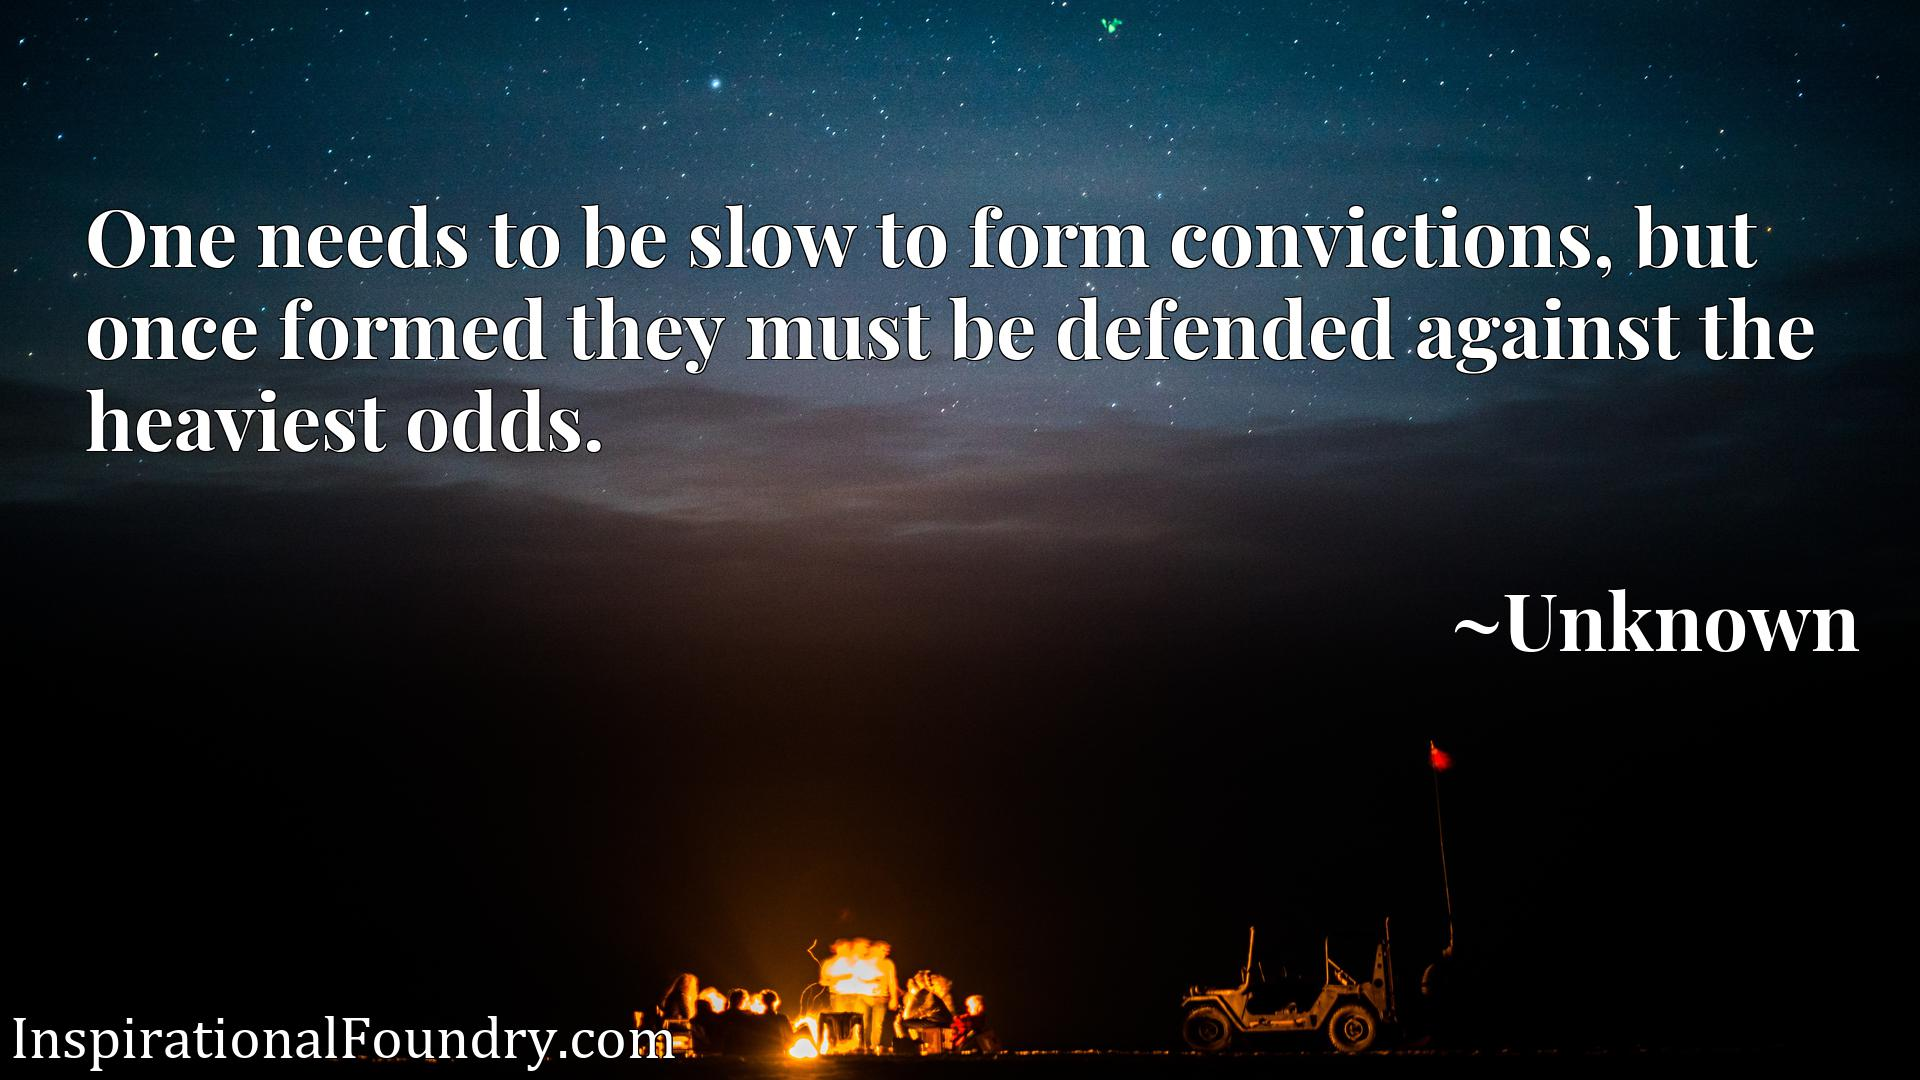 One needs to be slow to form convictions, but once formed they must be defended against the heaviest odds.